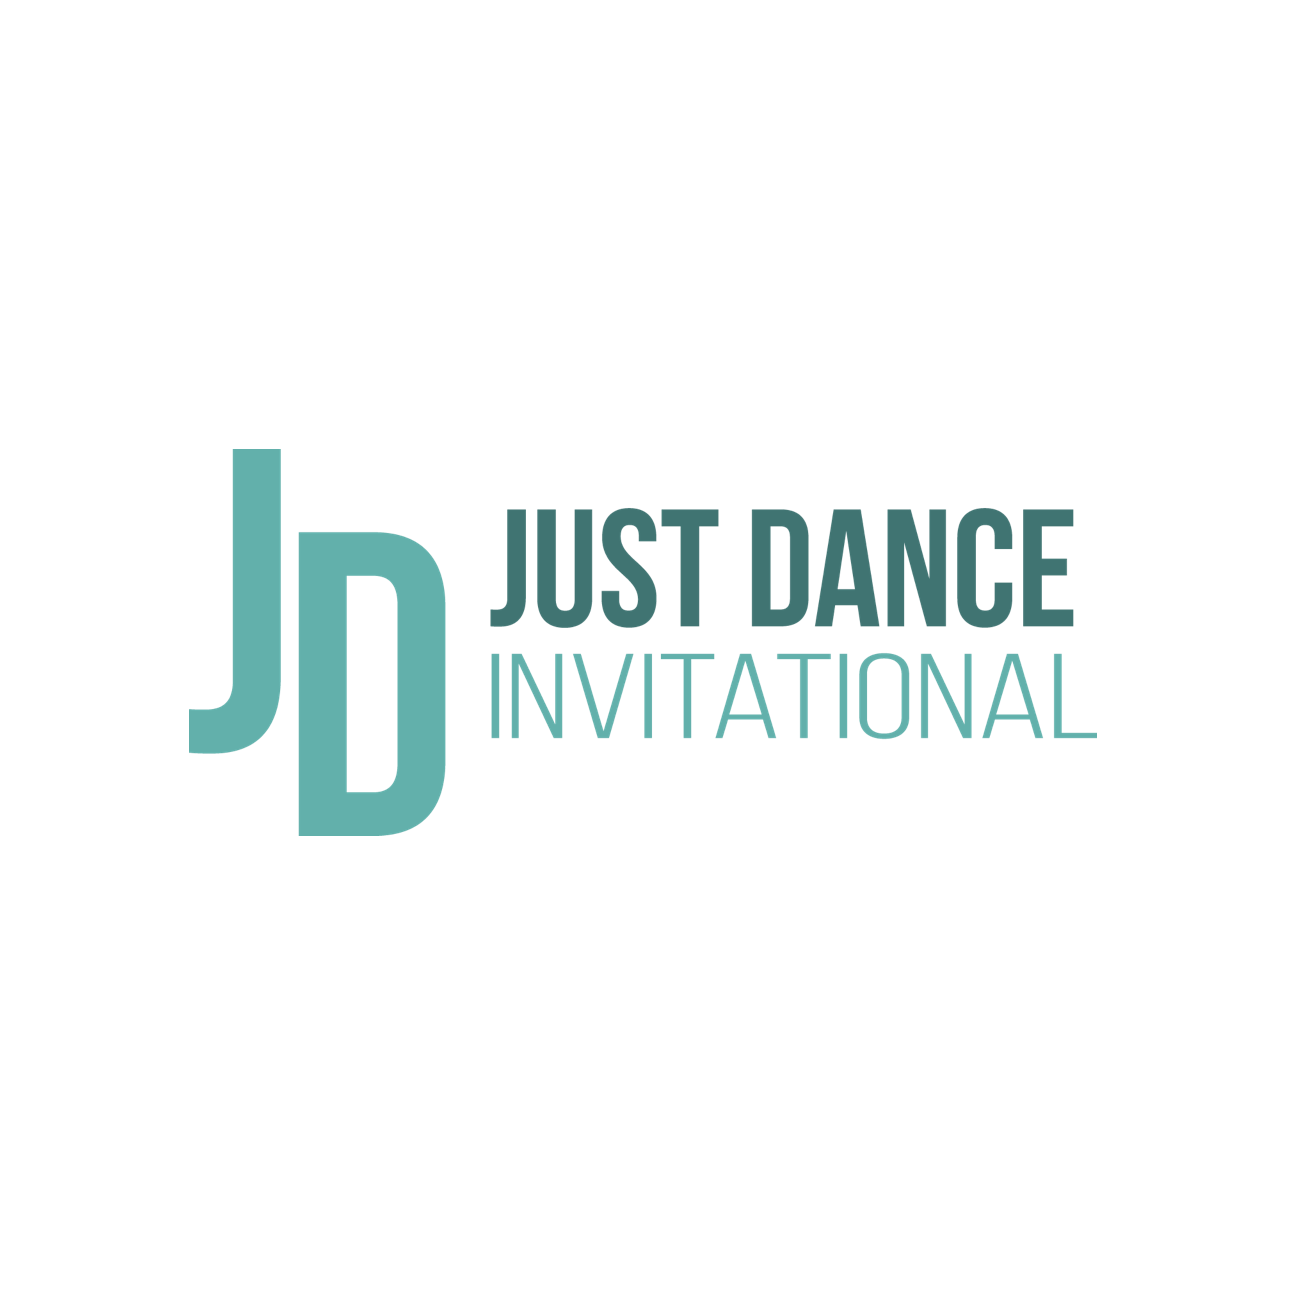 Just Dance Invitational